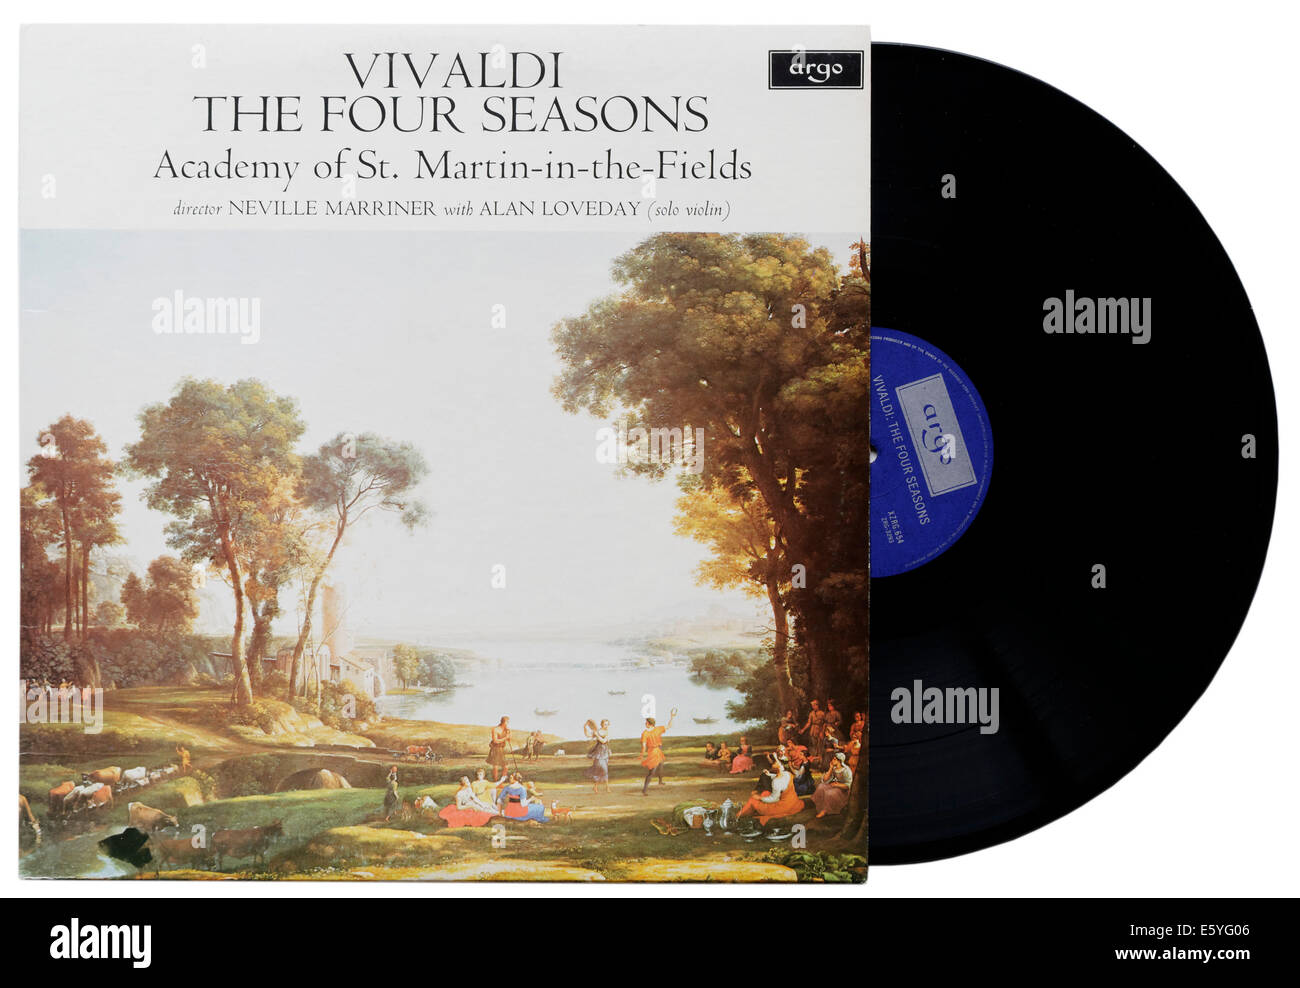 Vivaldi's Four Seasons on vinyl, Sir Neville Marriner conducting the Academy of St Martin in the Fields - Stock Image